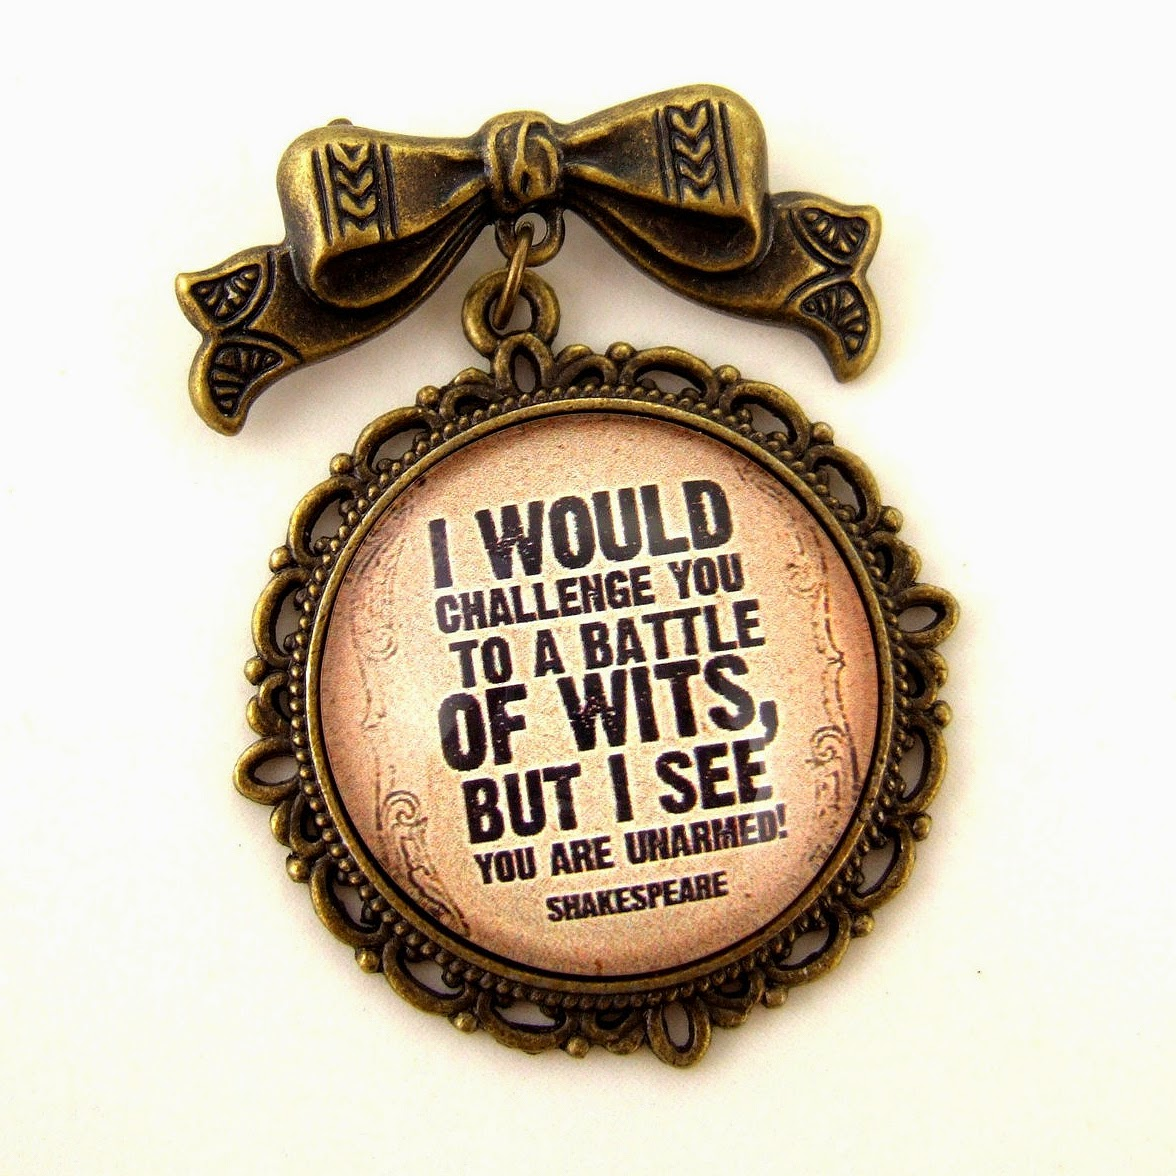 https://www.etsy.com/listing/159738171/william-shakespeare-brooch-literary?ref=sr_gallery_7&ga_search_query=william+shakespeare&ga_page=2&ga_search_type=all&ga_view_type=gallery